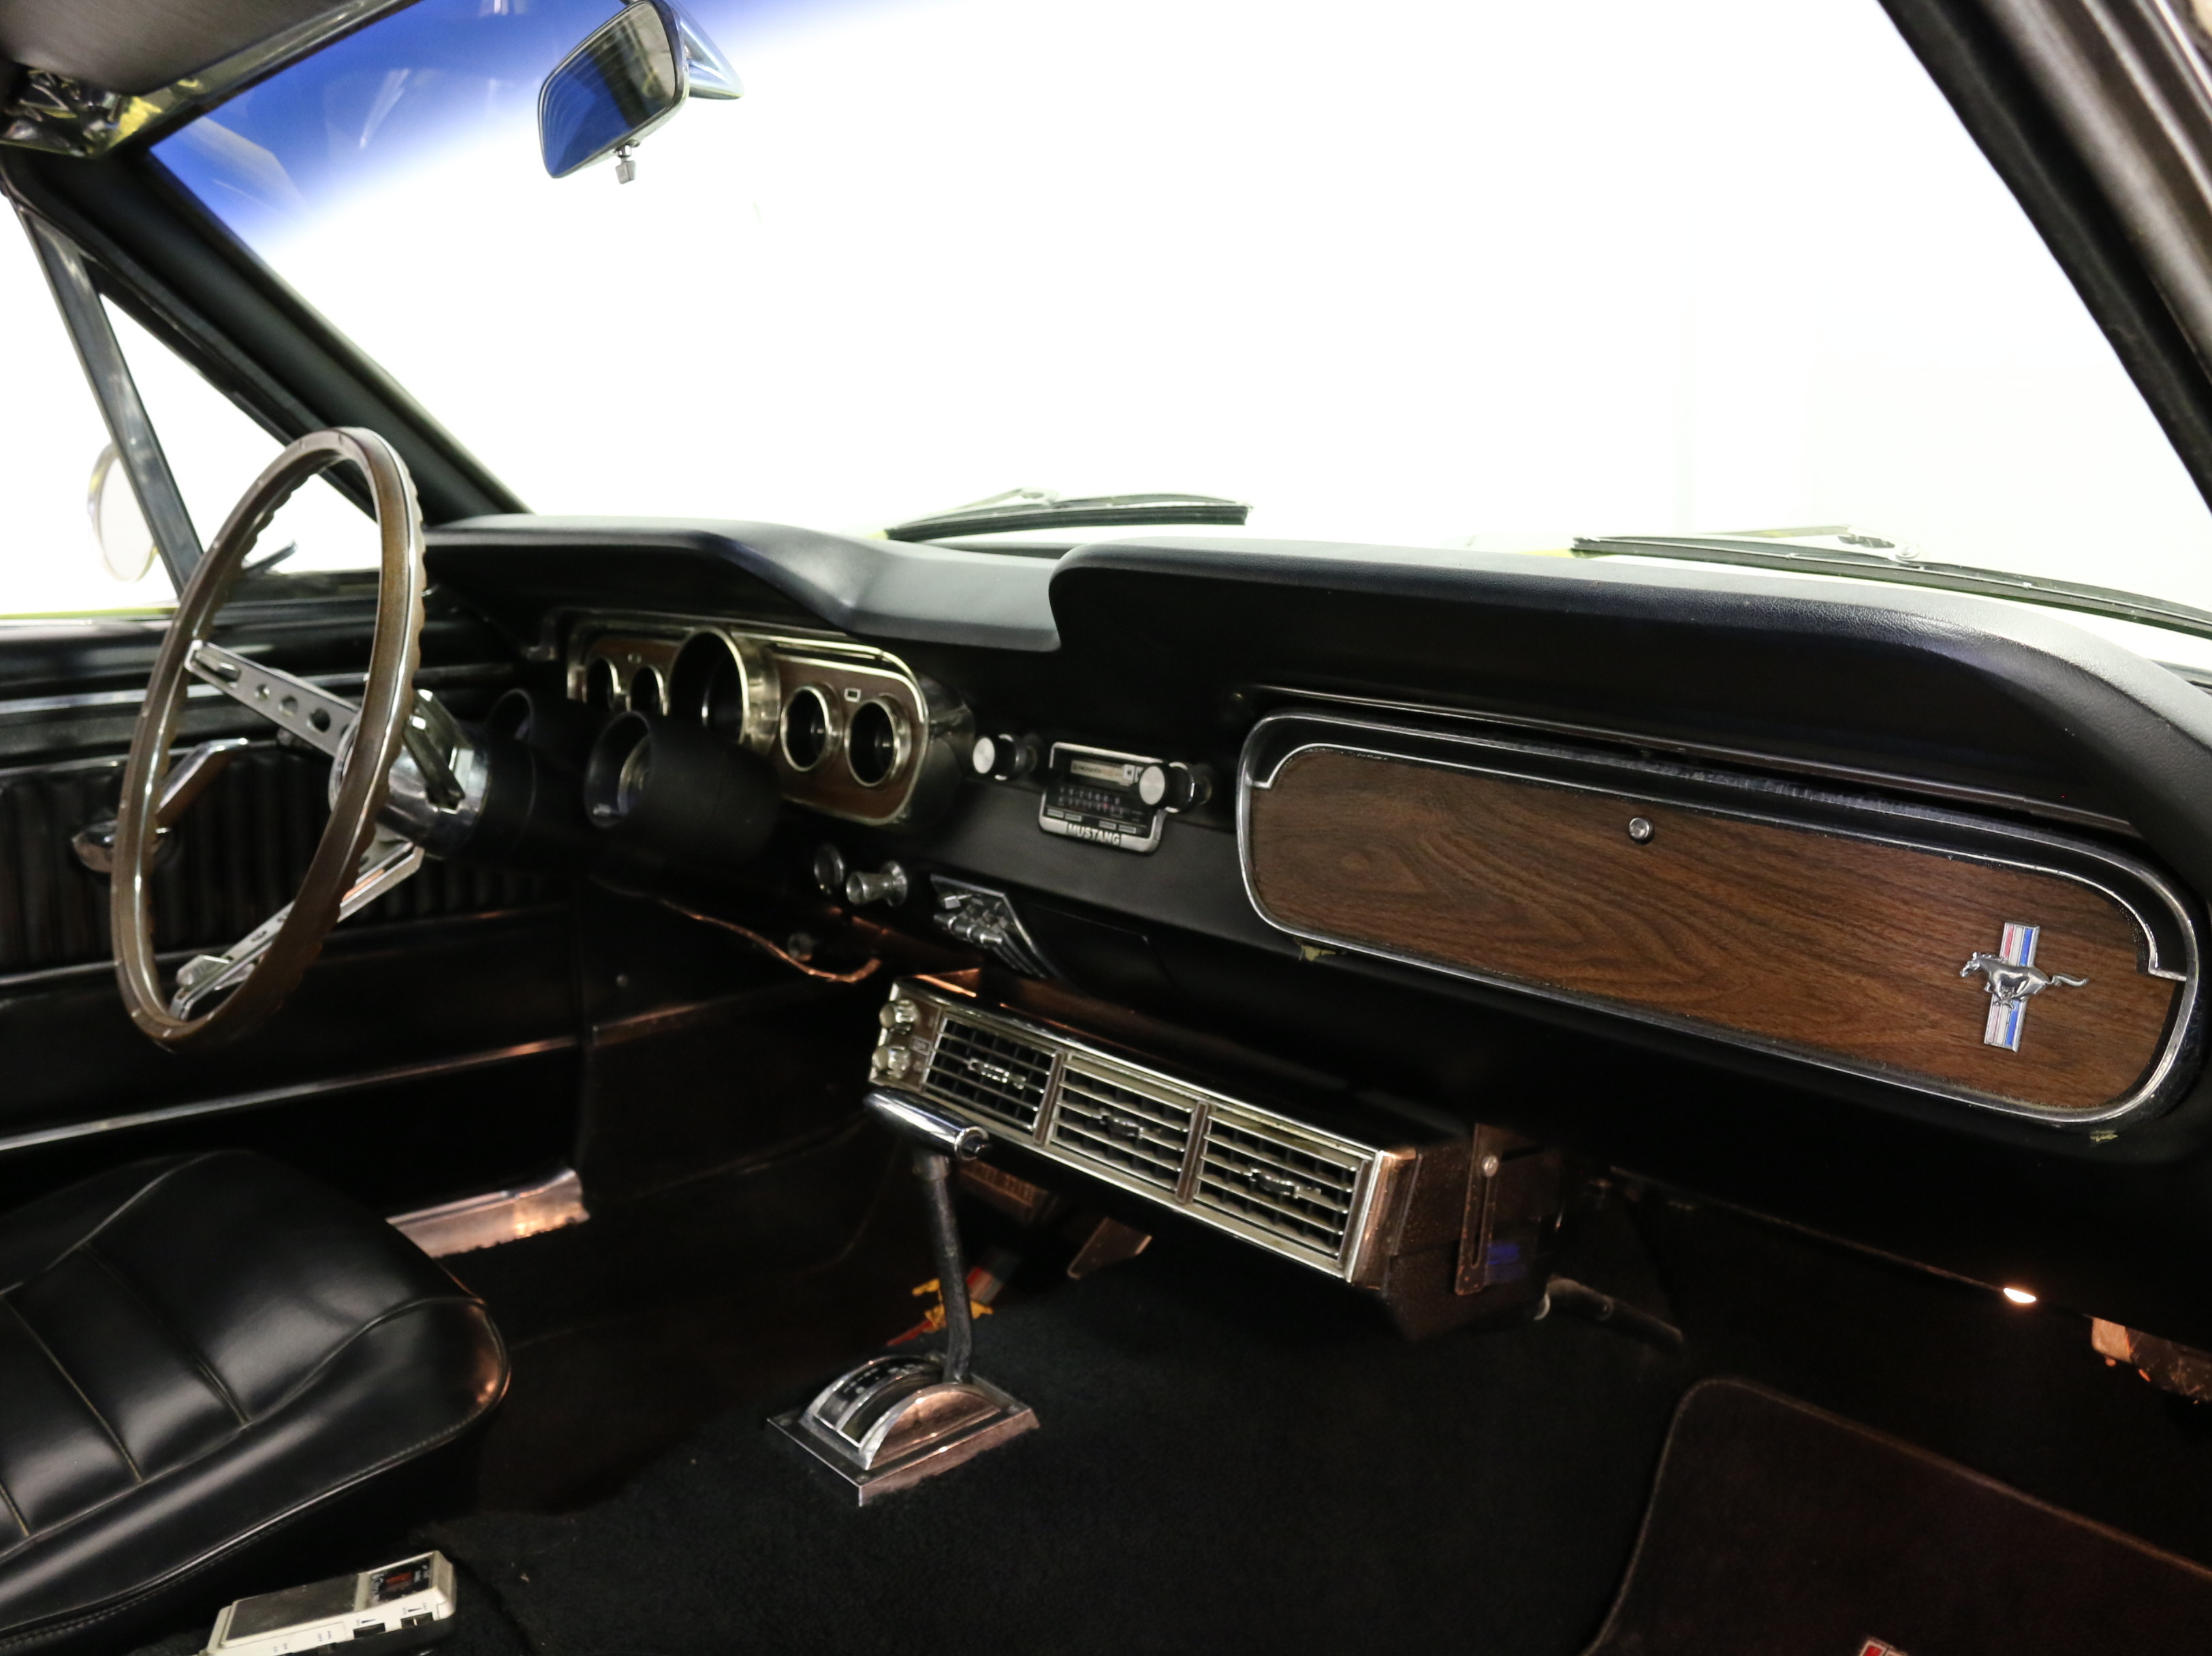 1965 Ford Mustang Convertible: SMOOTH RUNNING RAGTOP! 289 V8, AUTO, POWER TOP, SHARP PAINT, PONY INTERIOR, NICE